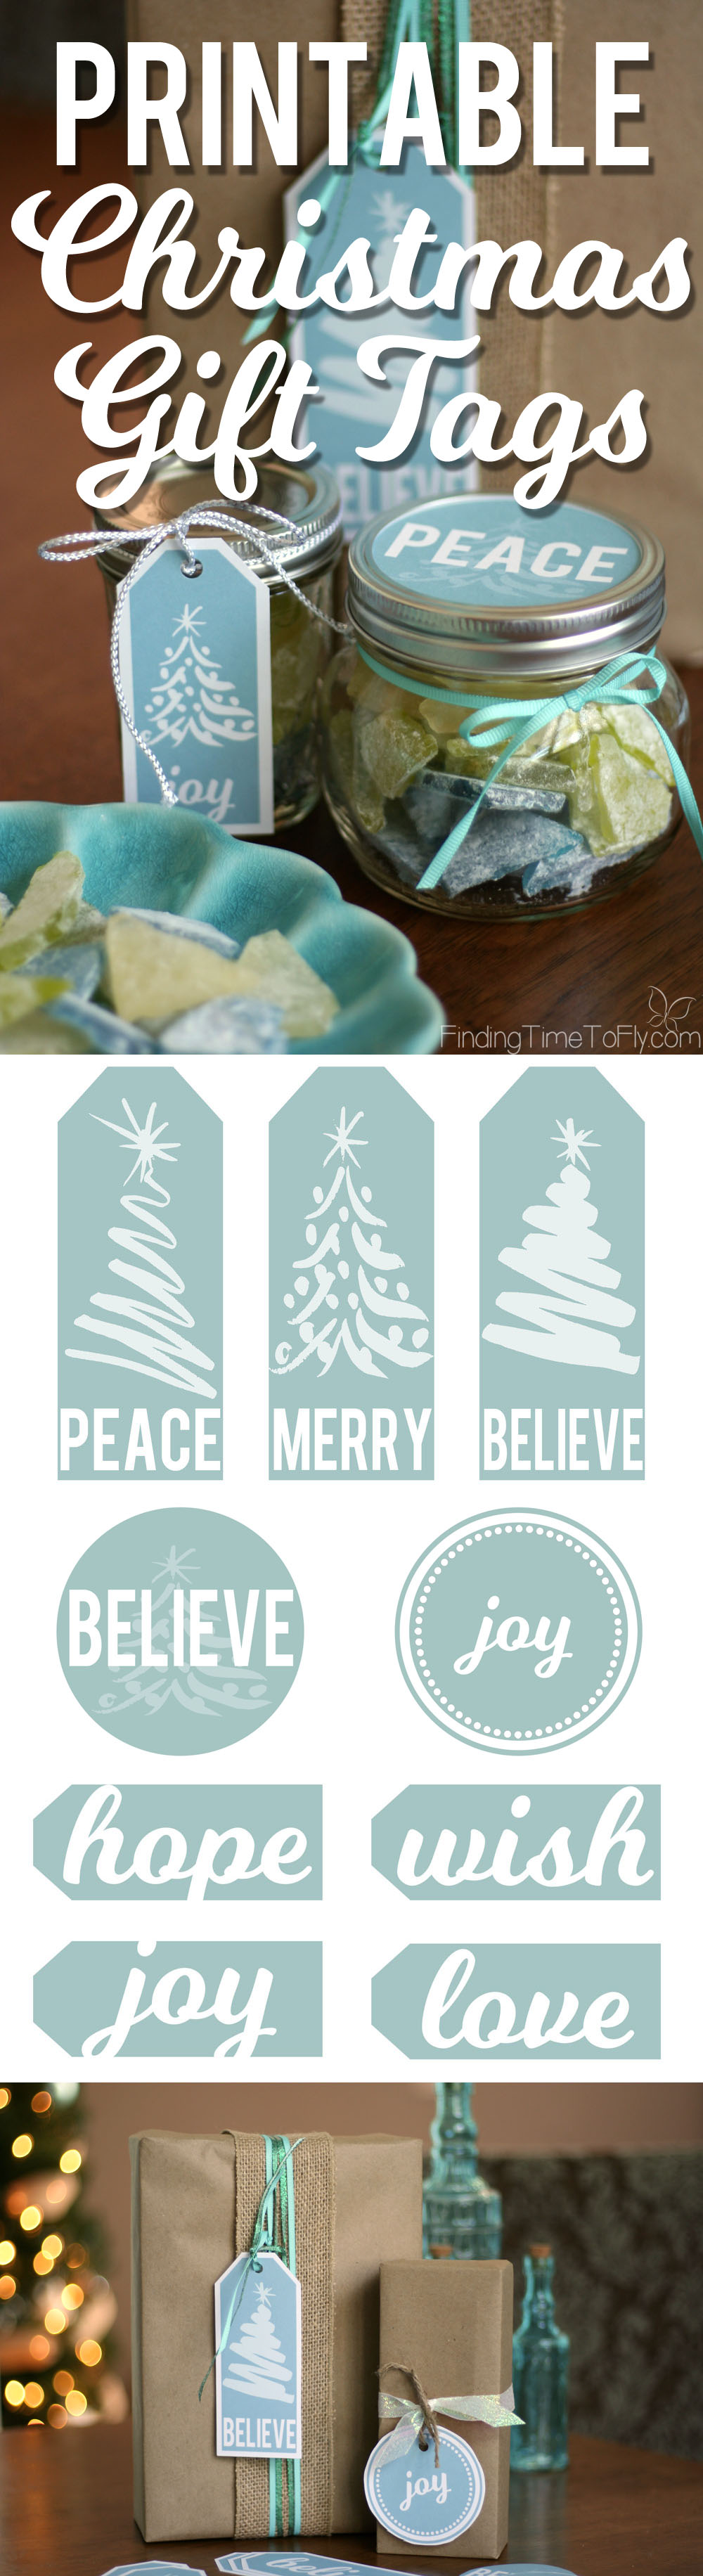 free printable christmas gift tags in blue finding time to fly